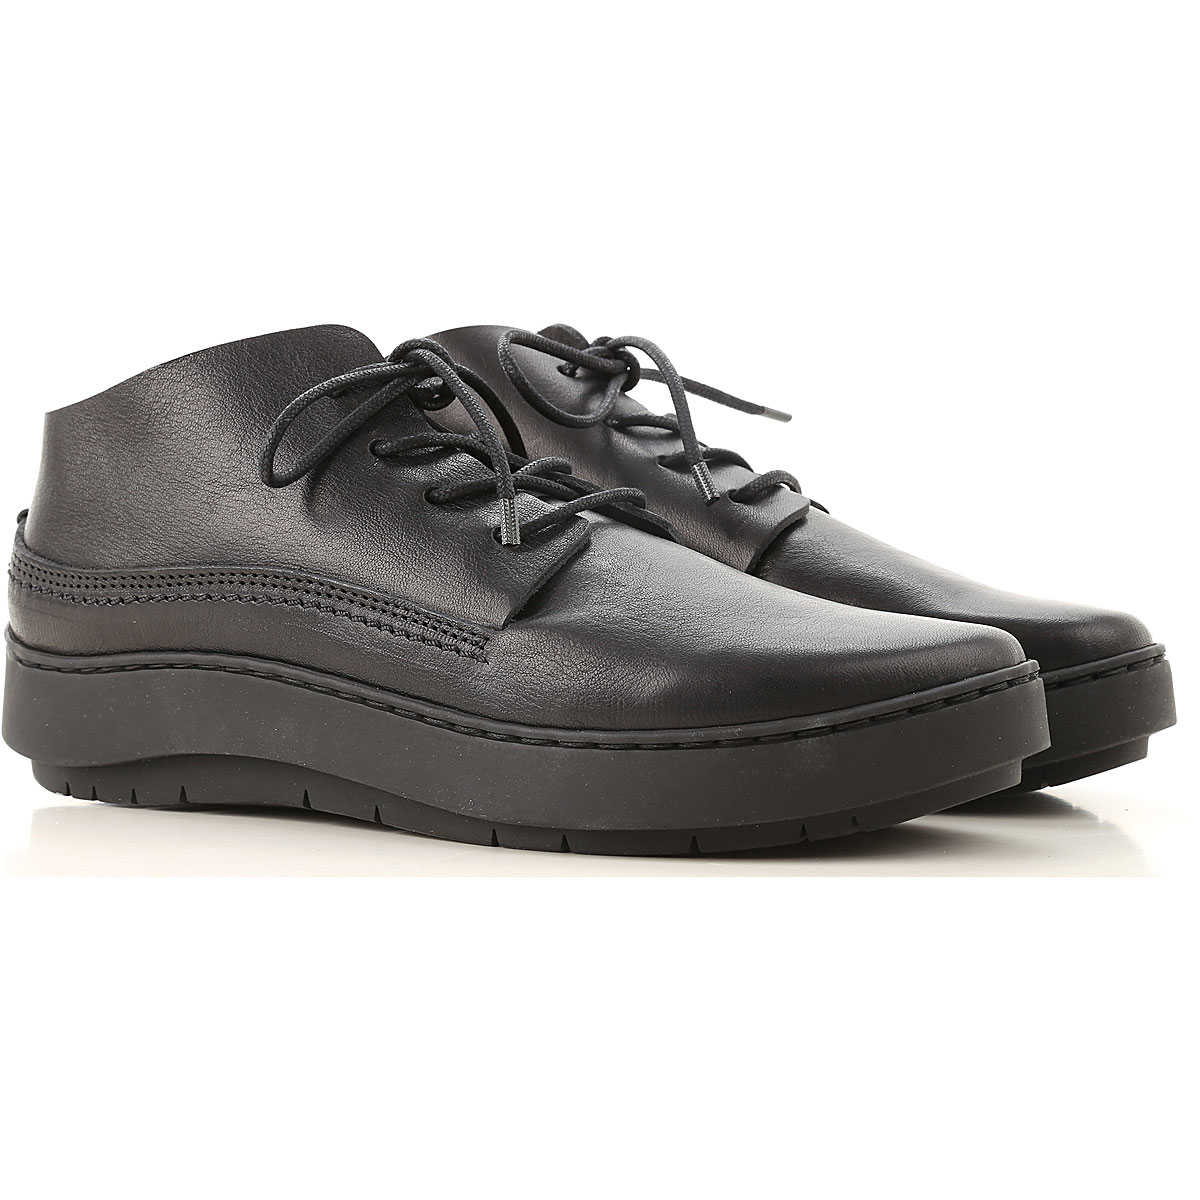 Trippen Lace Up Shoes for Men Oxfords Derbies and Brogues SE - GOOFASH